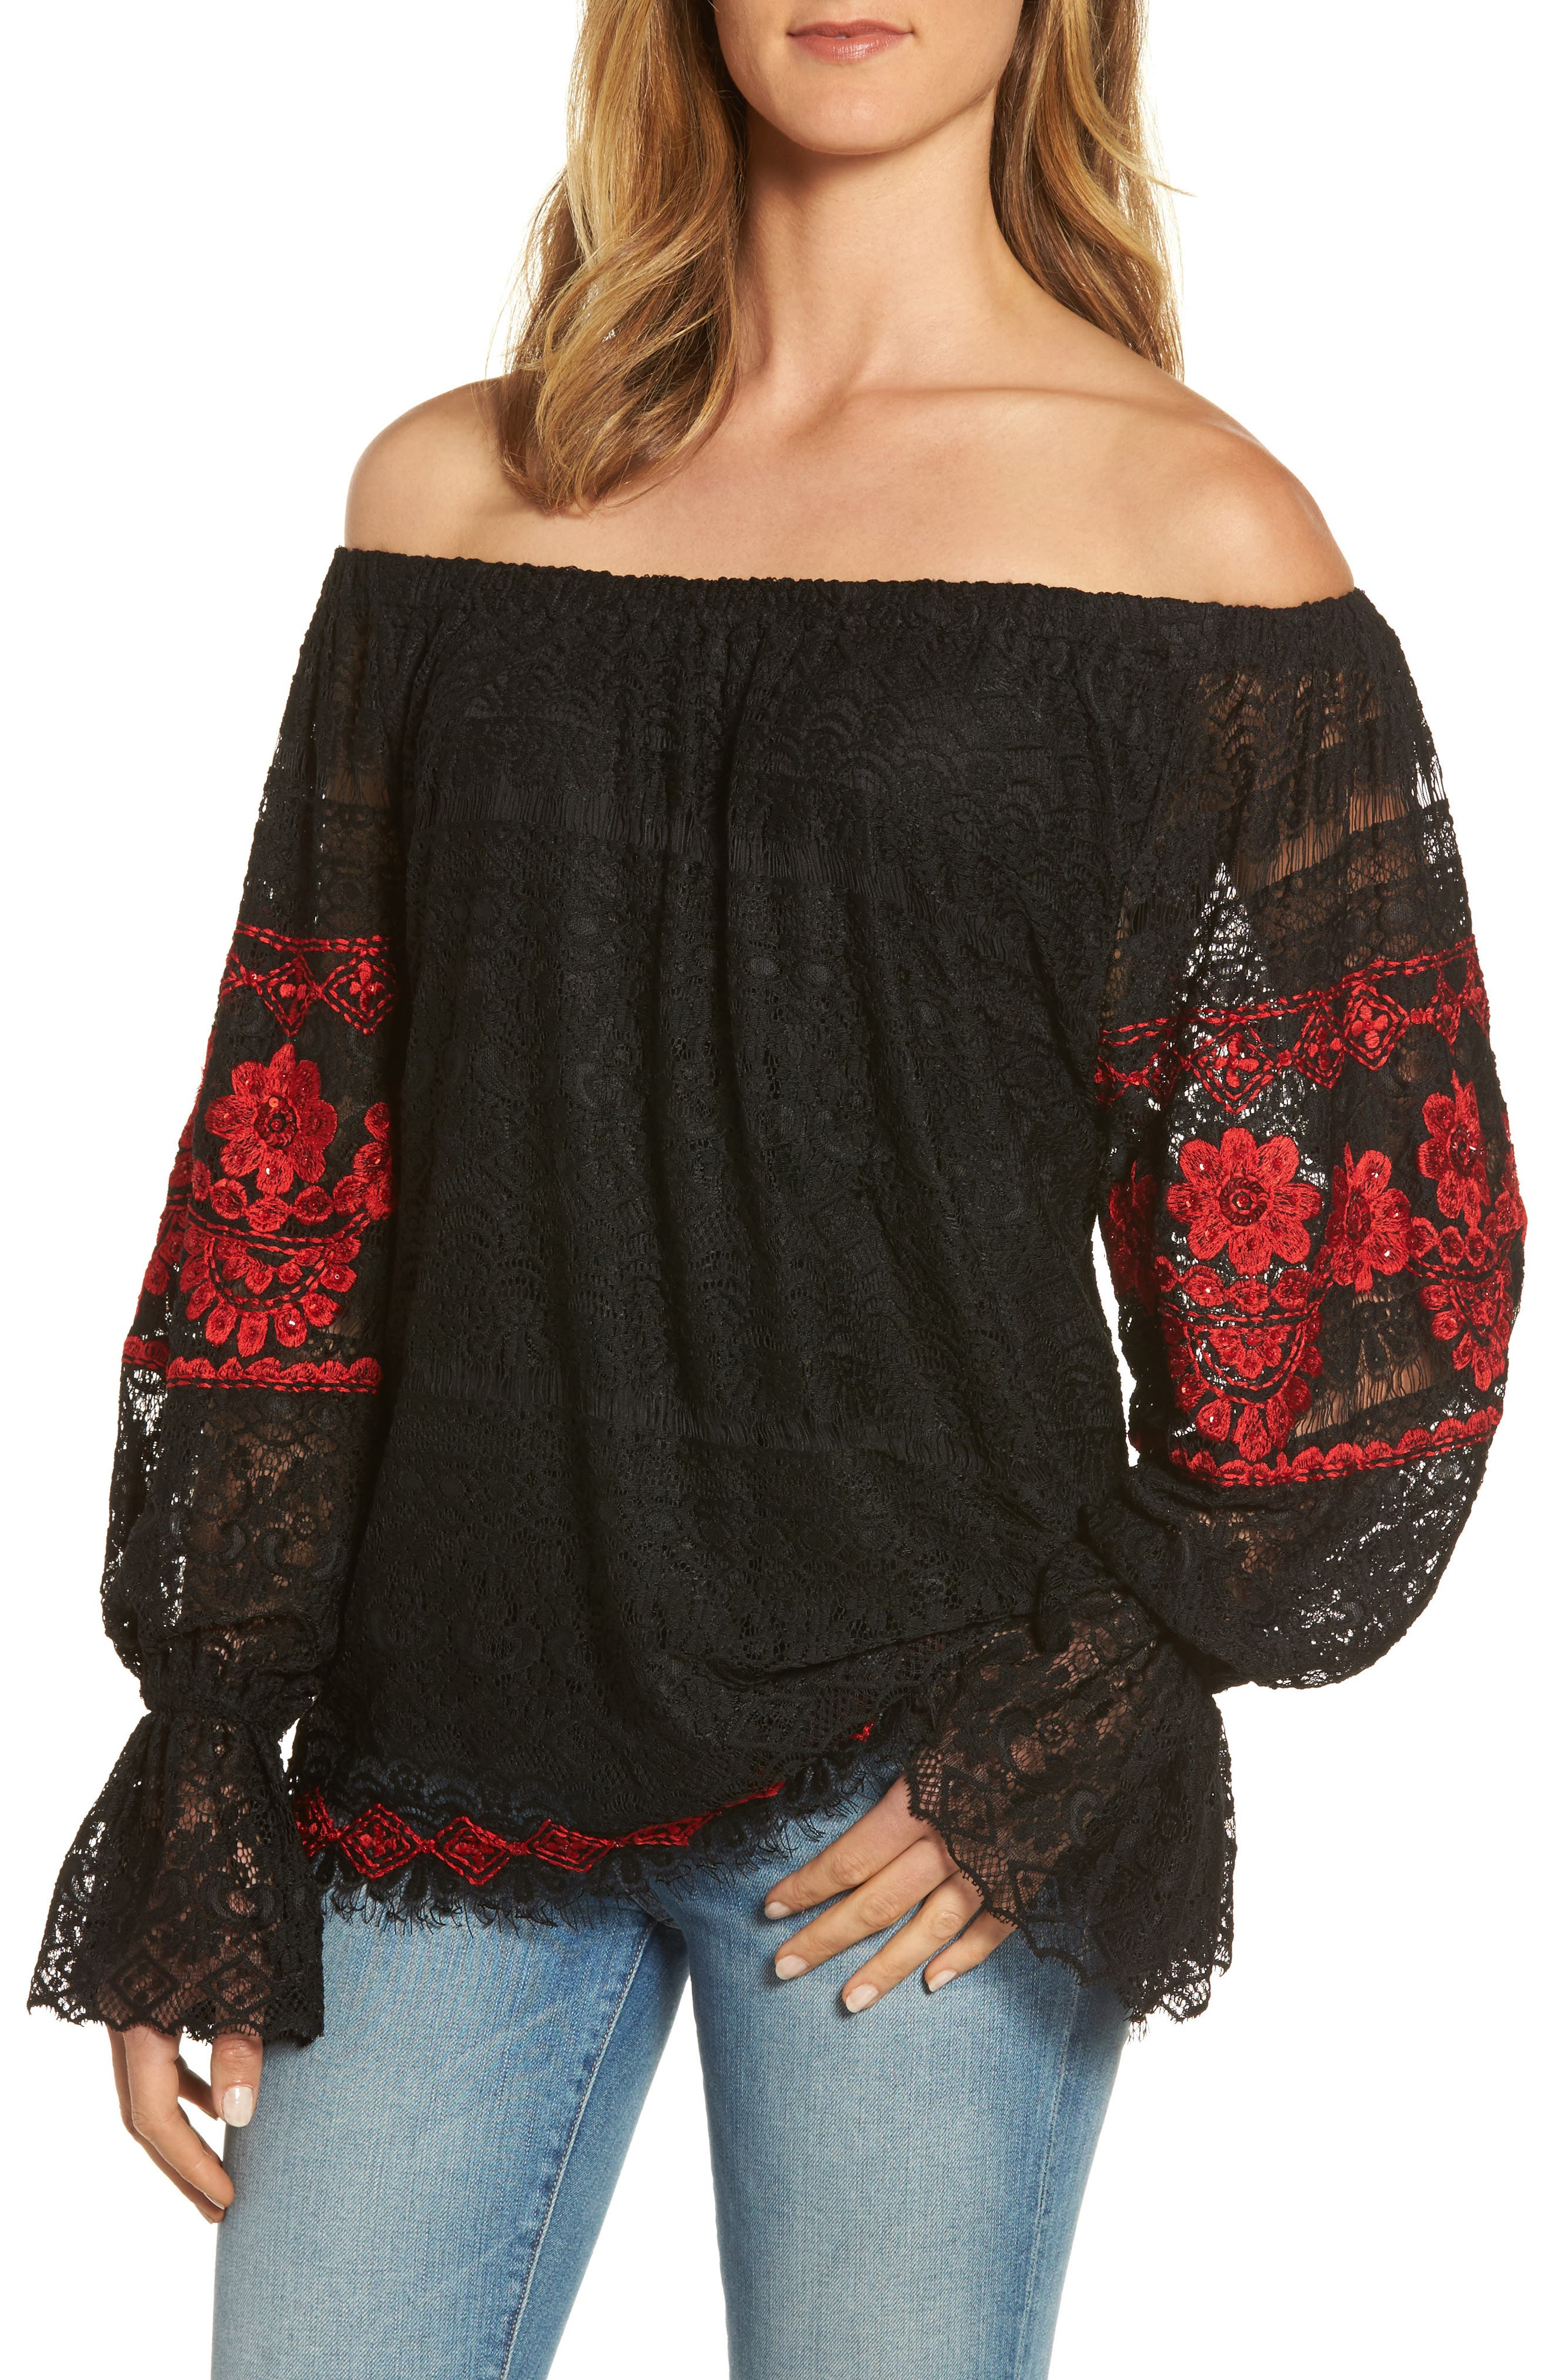 Clare Off the Shoulder Lace Top,                         Main,                         color,